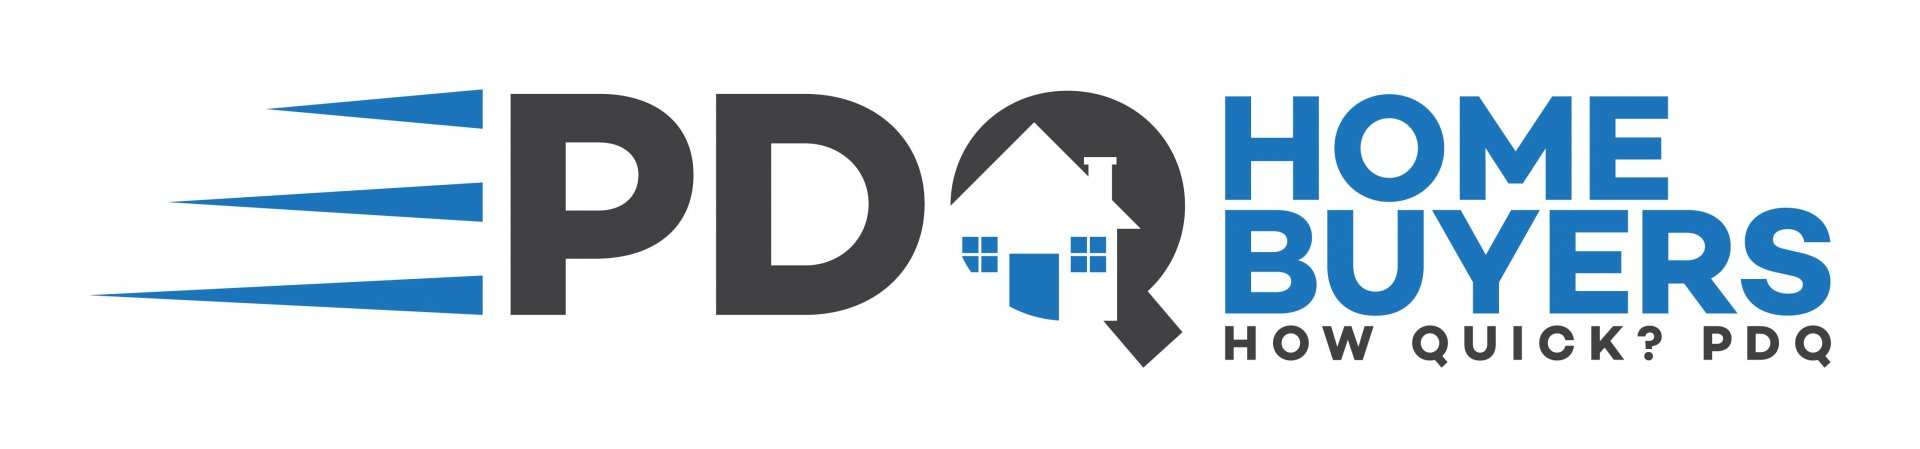 PDQ Home Buyers logo